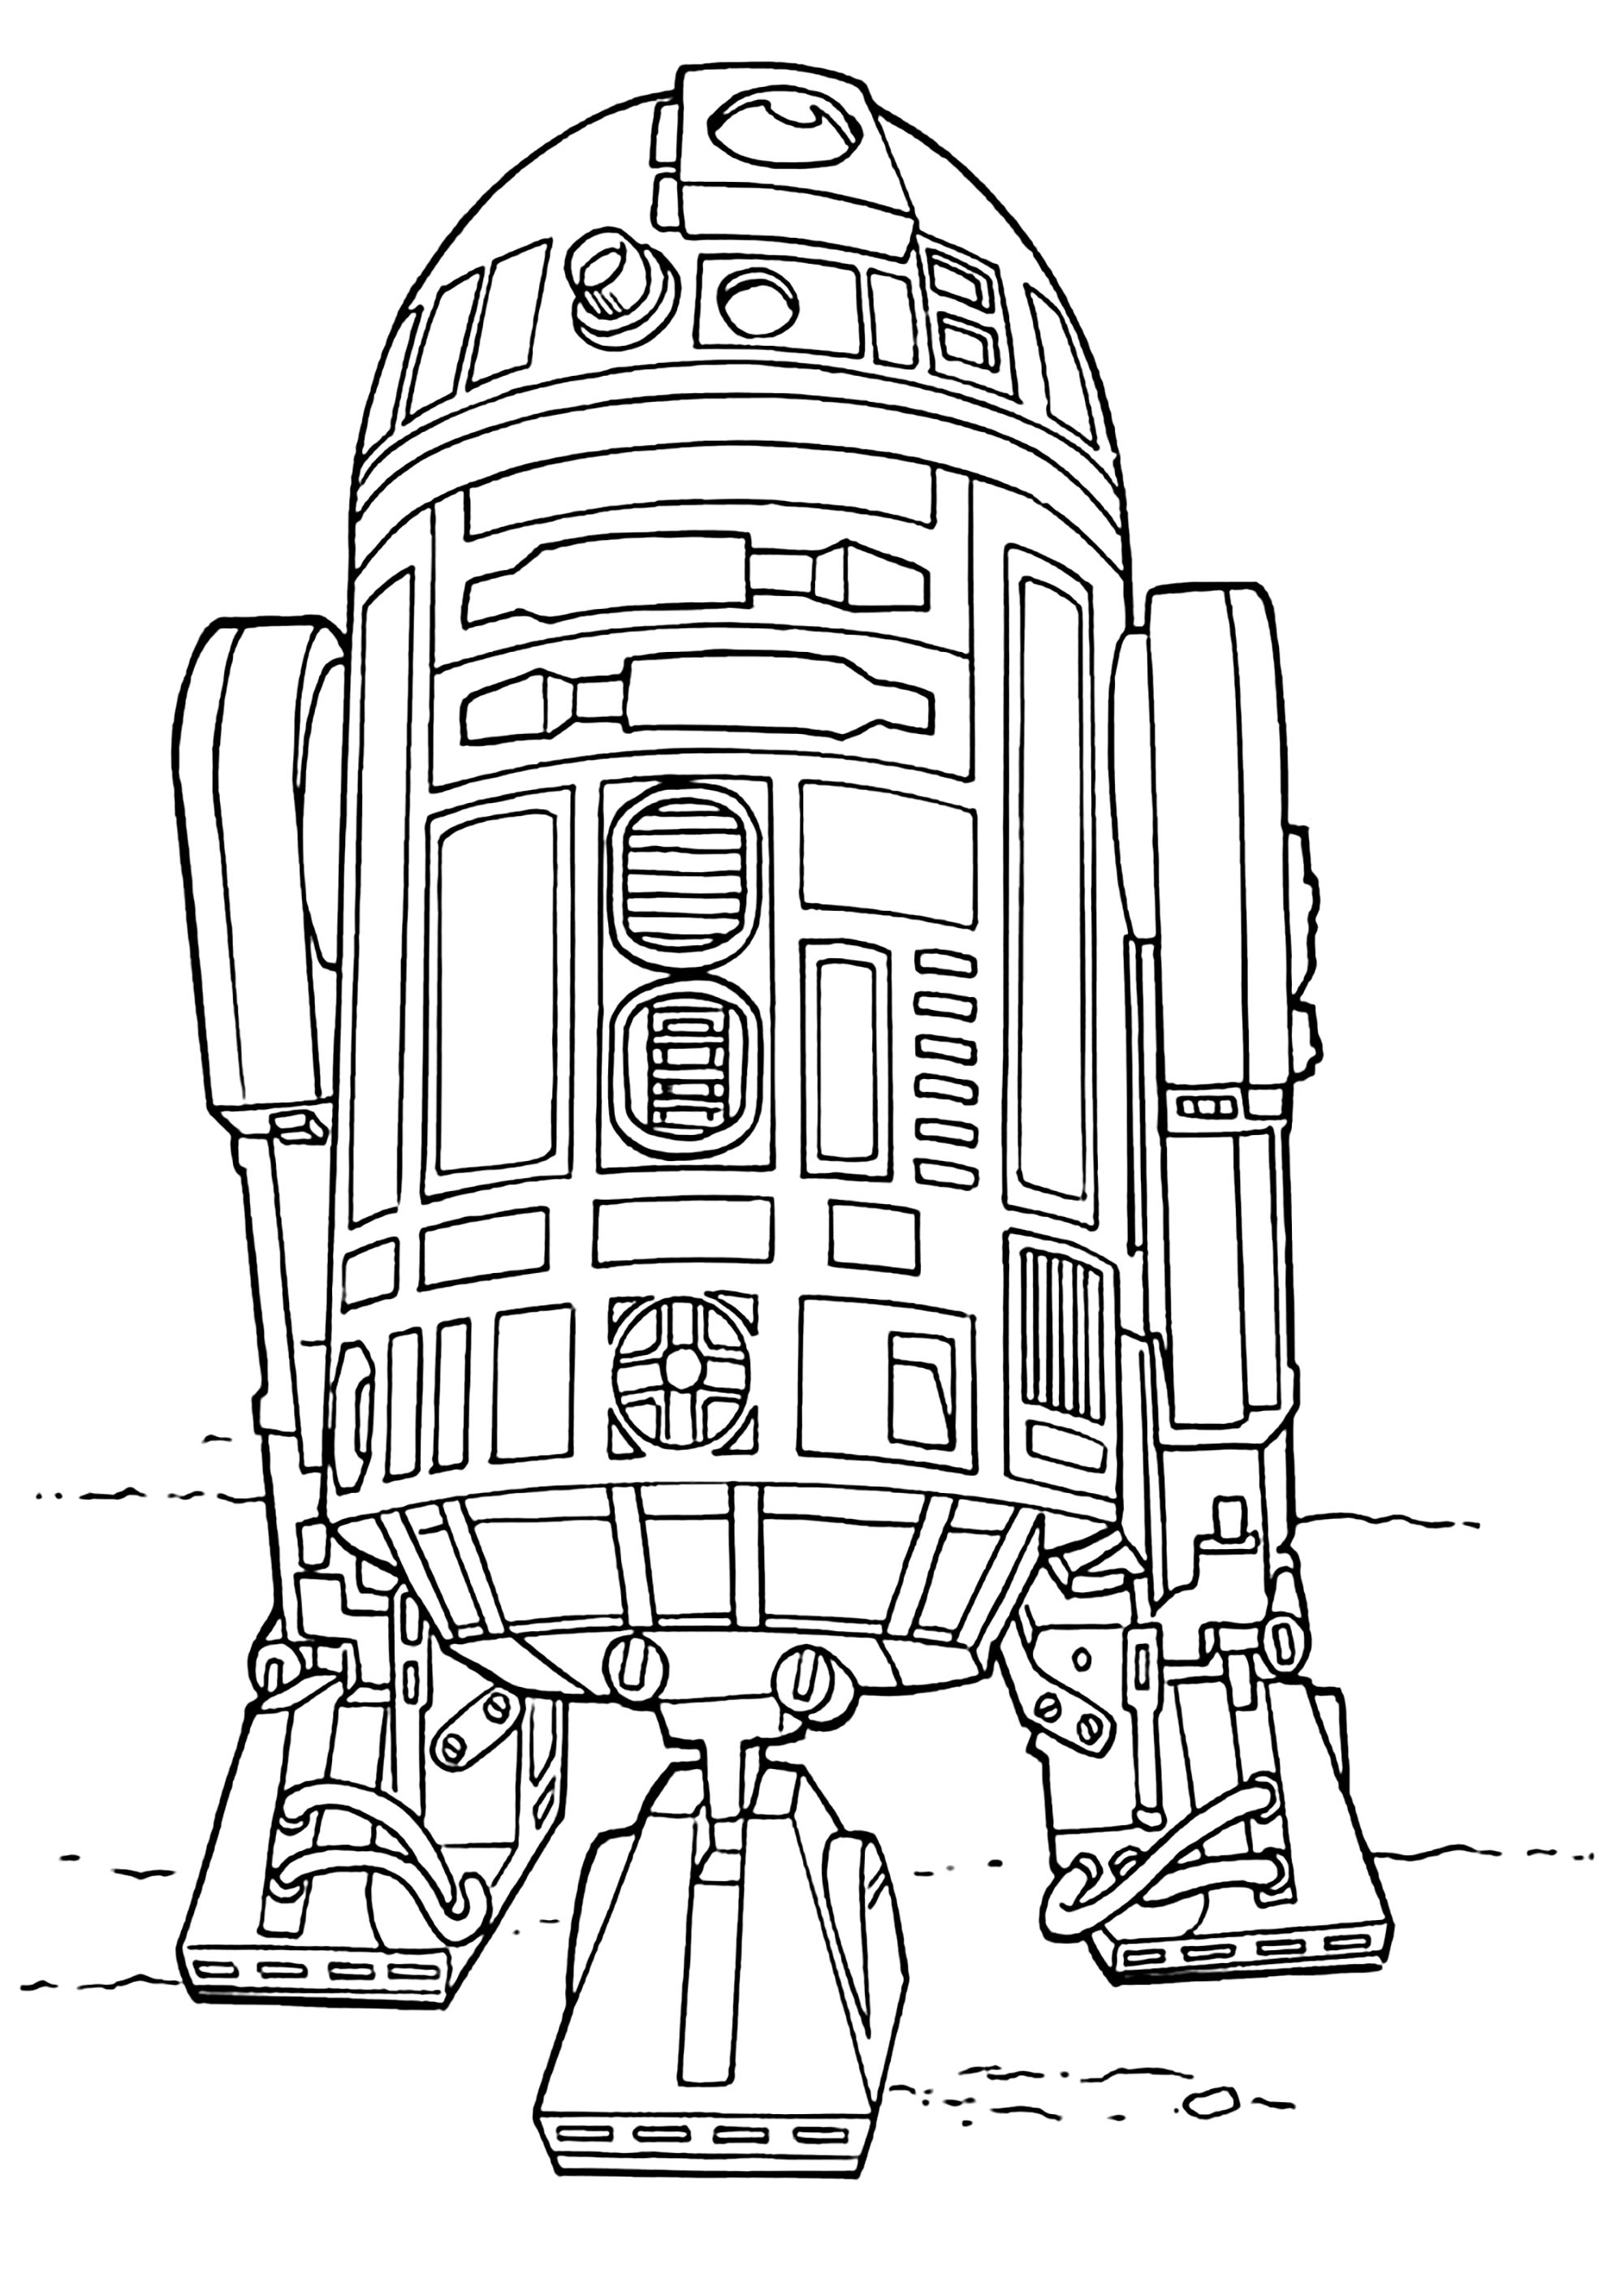 star wars free coloring pages star wars lightsaber coloring pages coloring home free pages star coloring wars